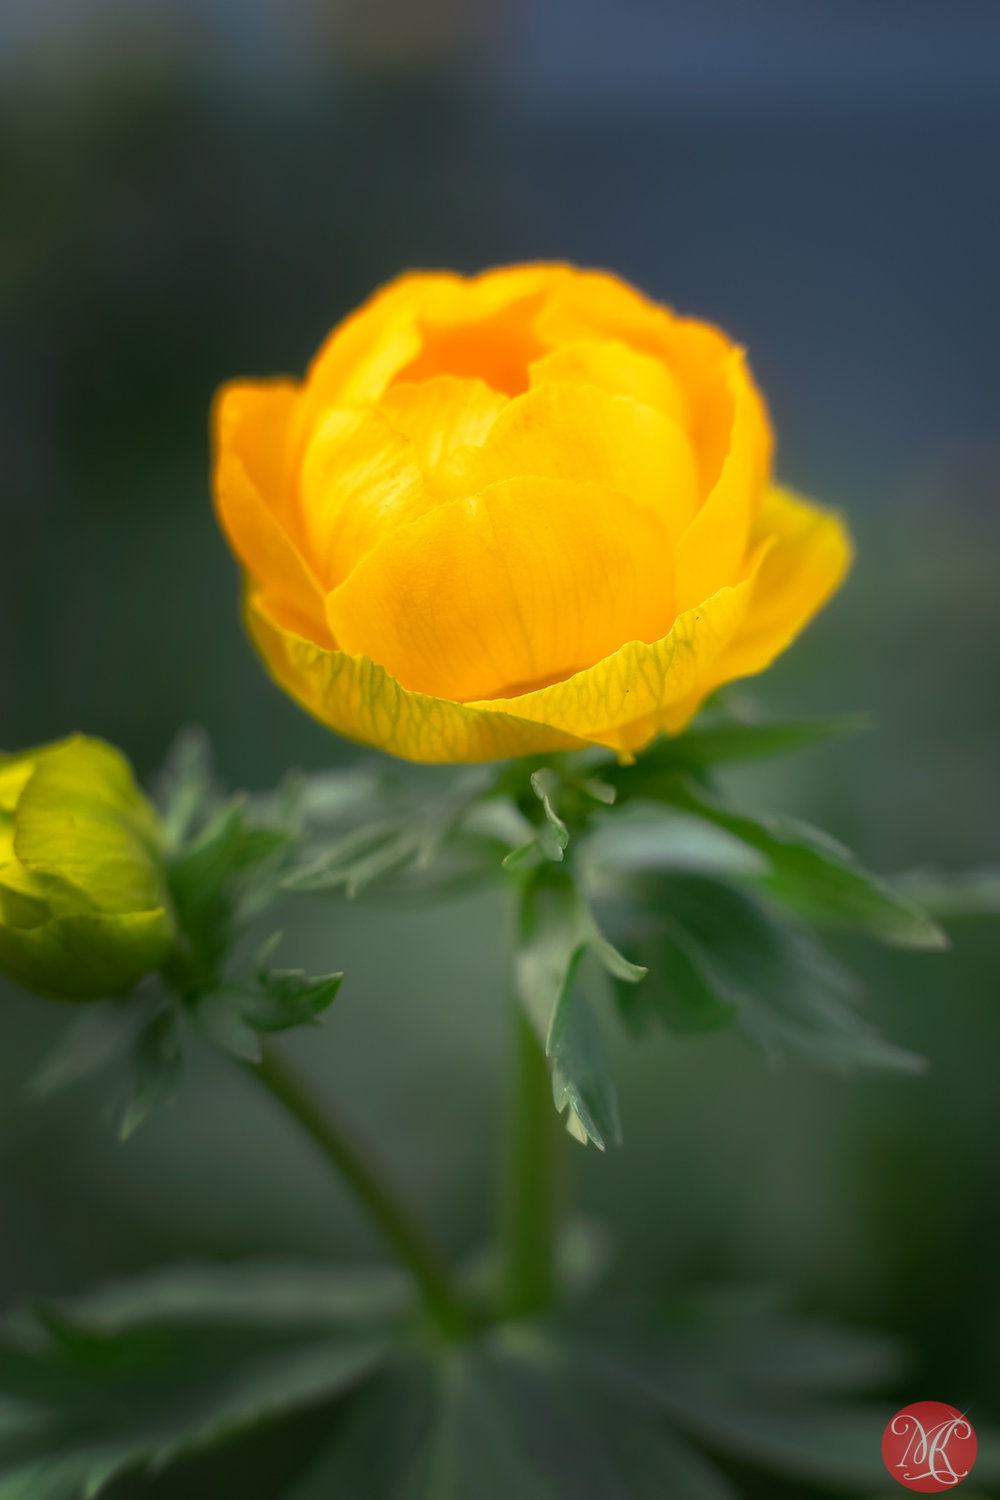 As warm as yellow can be